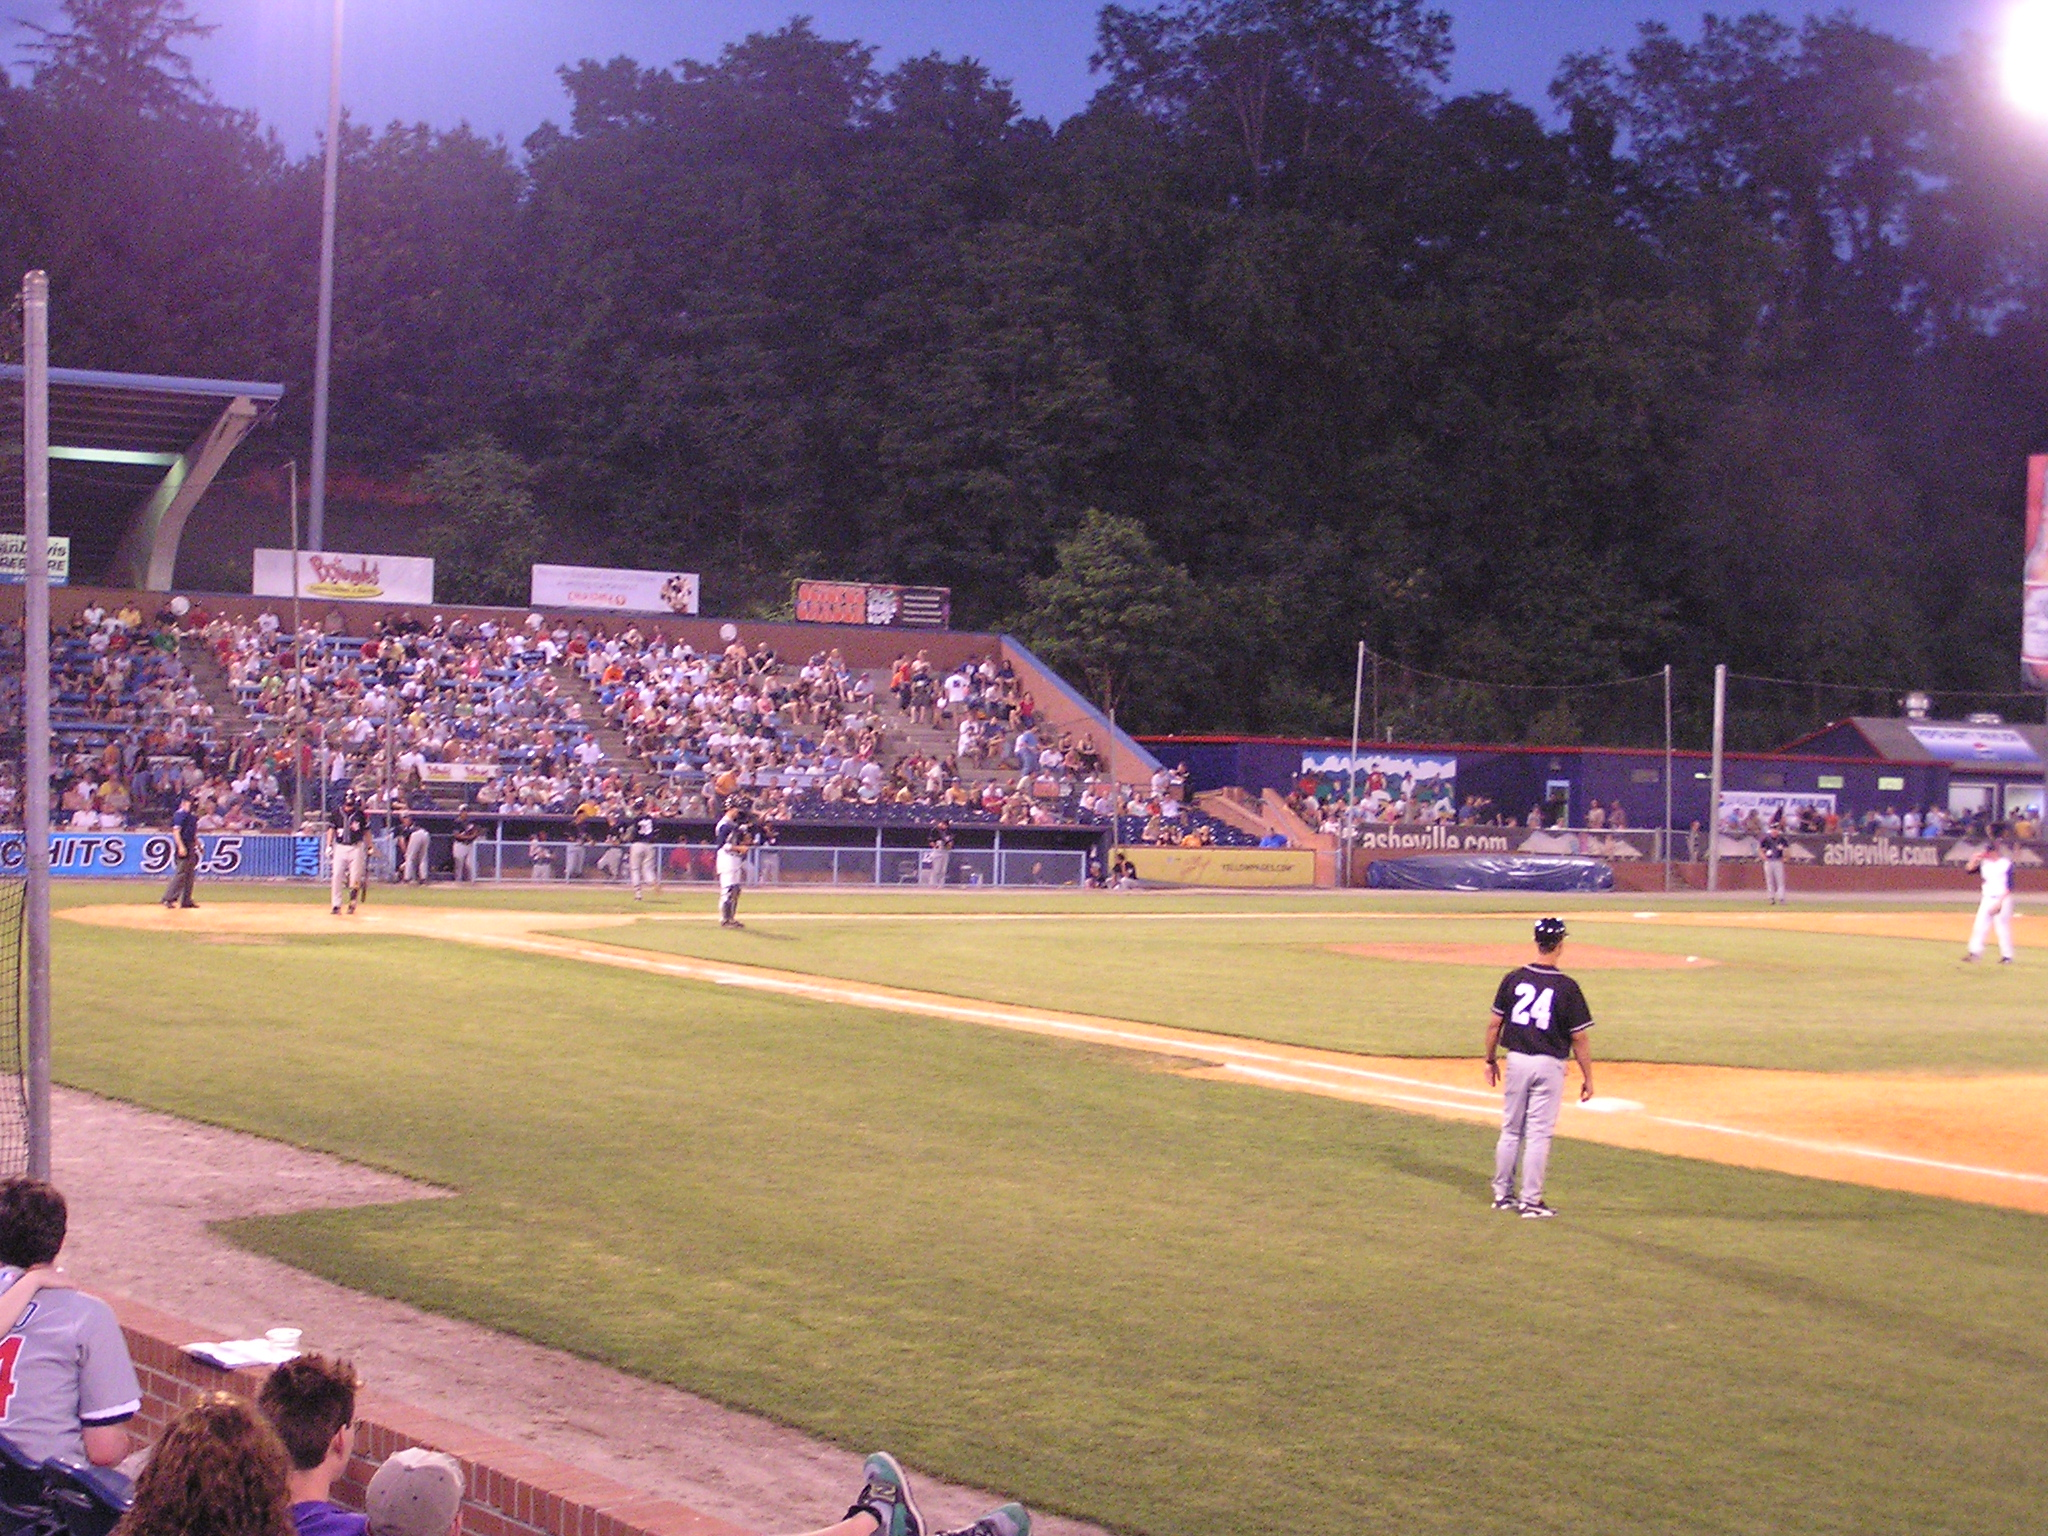 Game action at McCormick Field - Asheville, NC